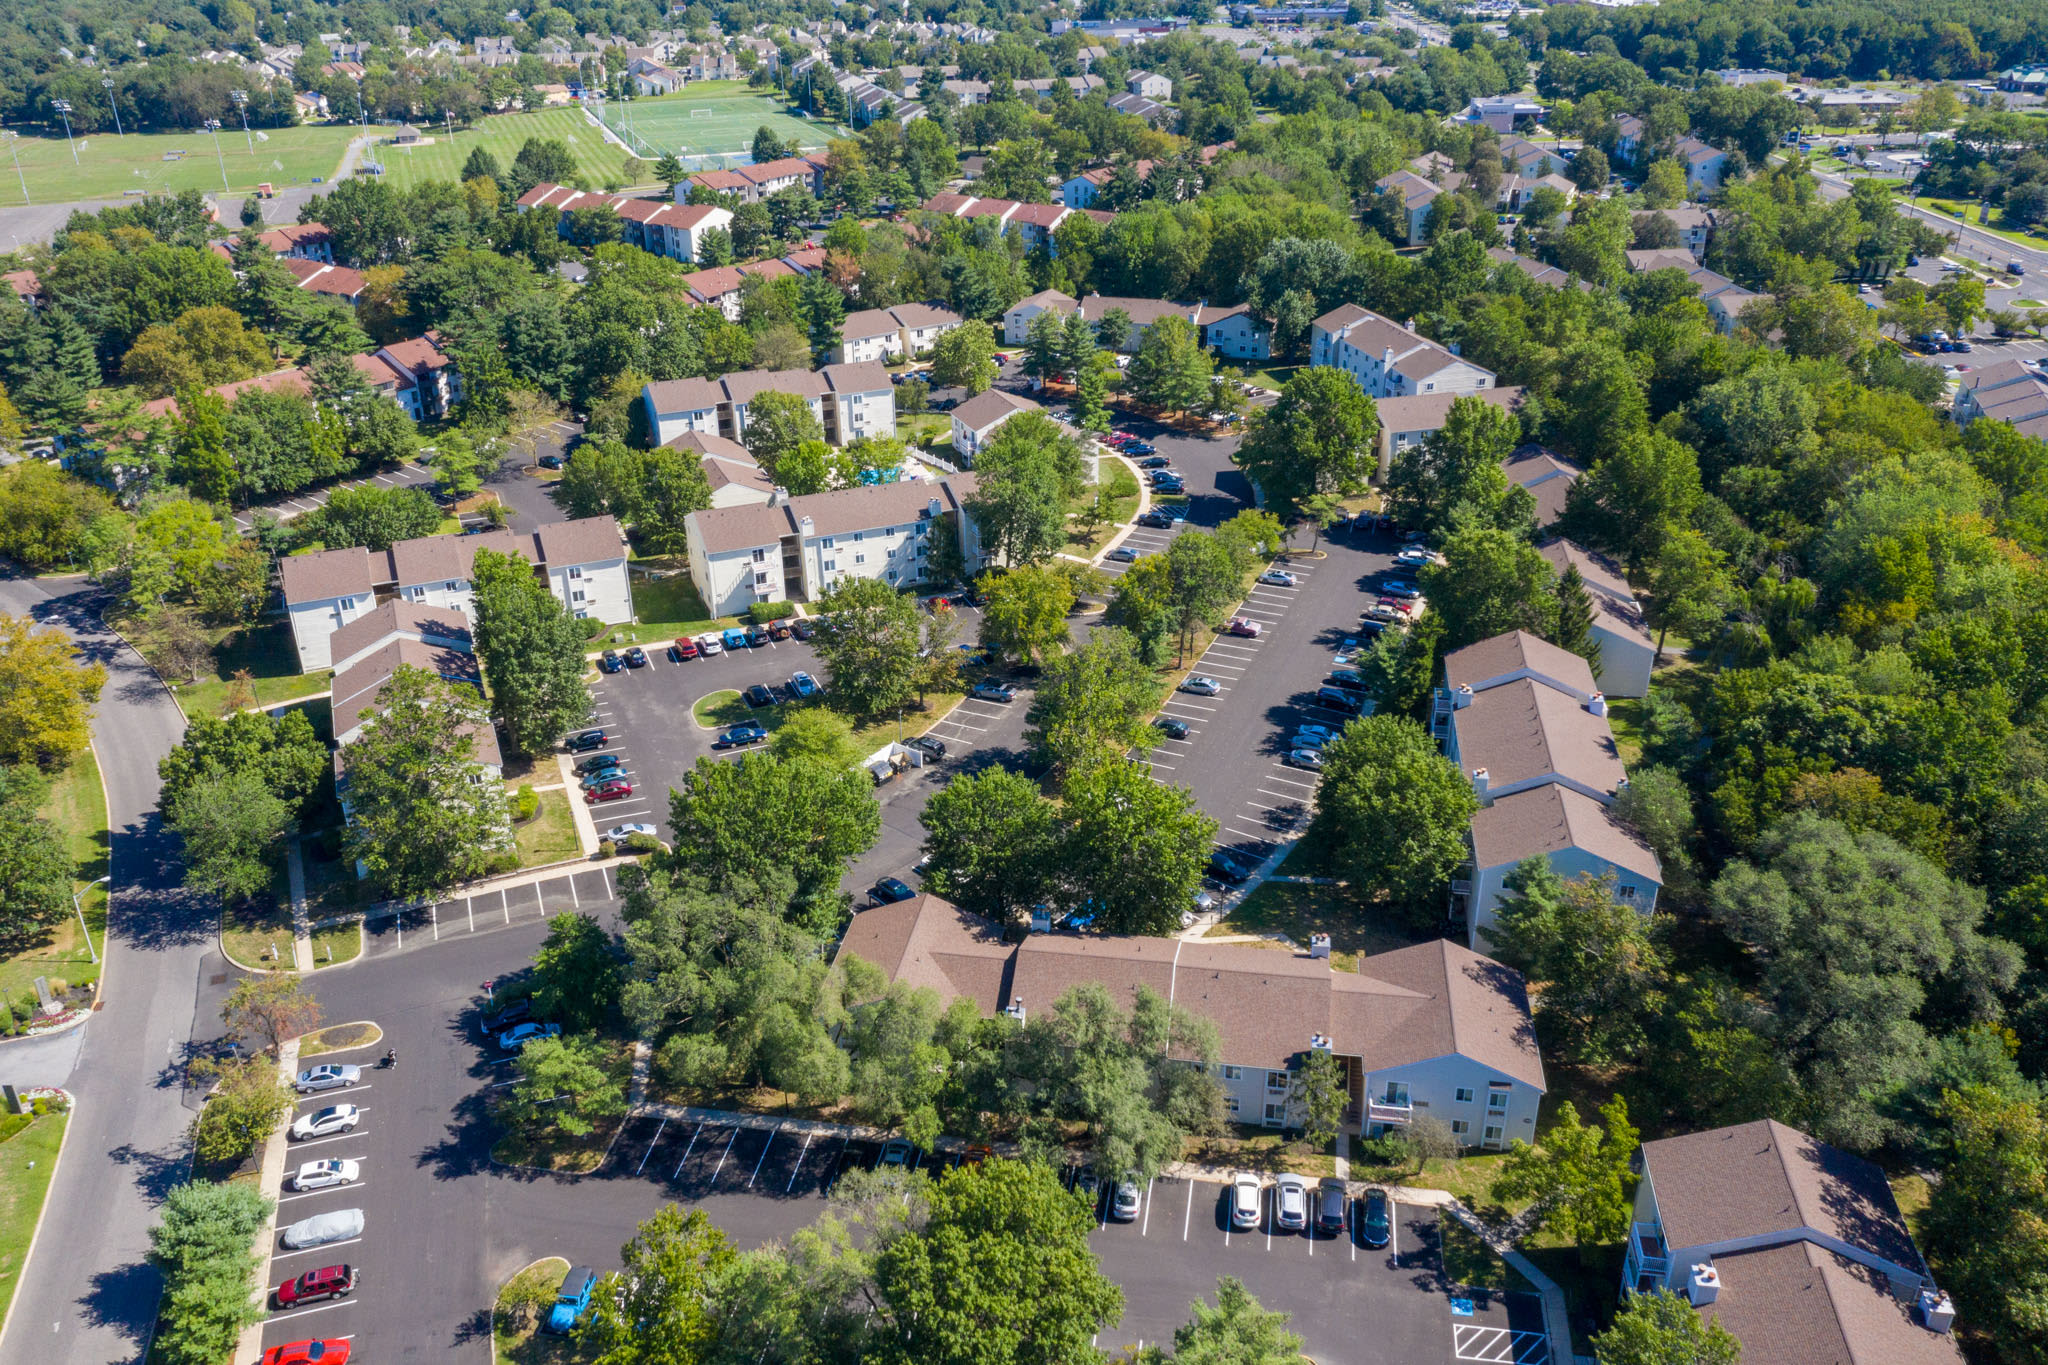 Ariel view of The Village at Voorhees in Voorhees, New Jersey